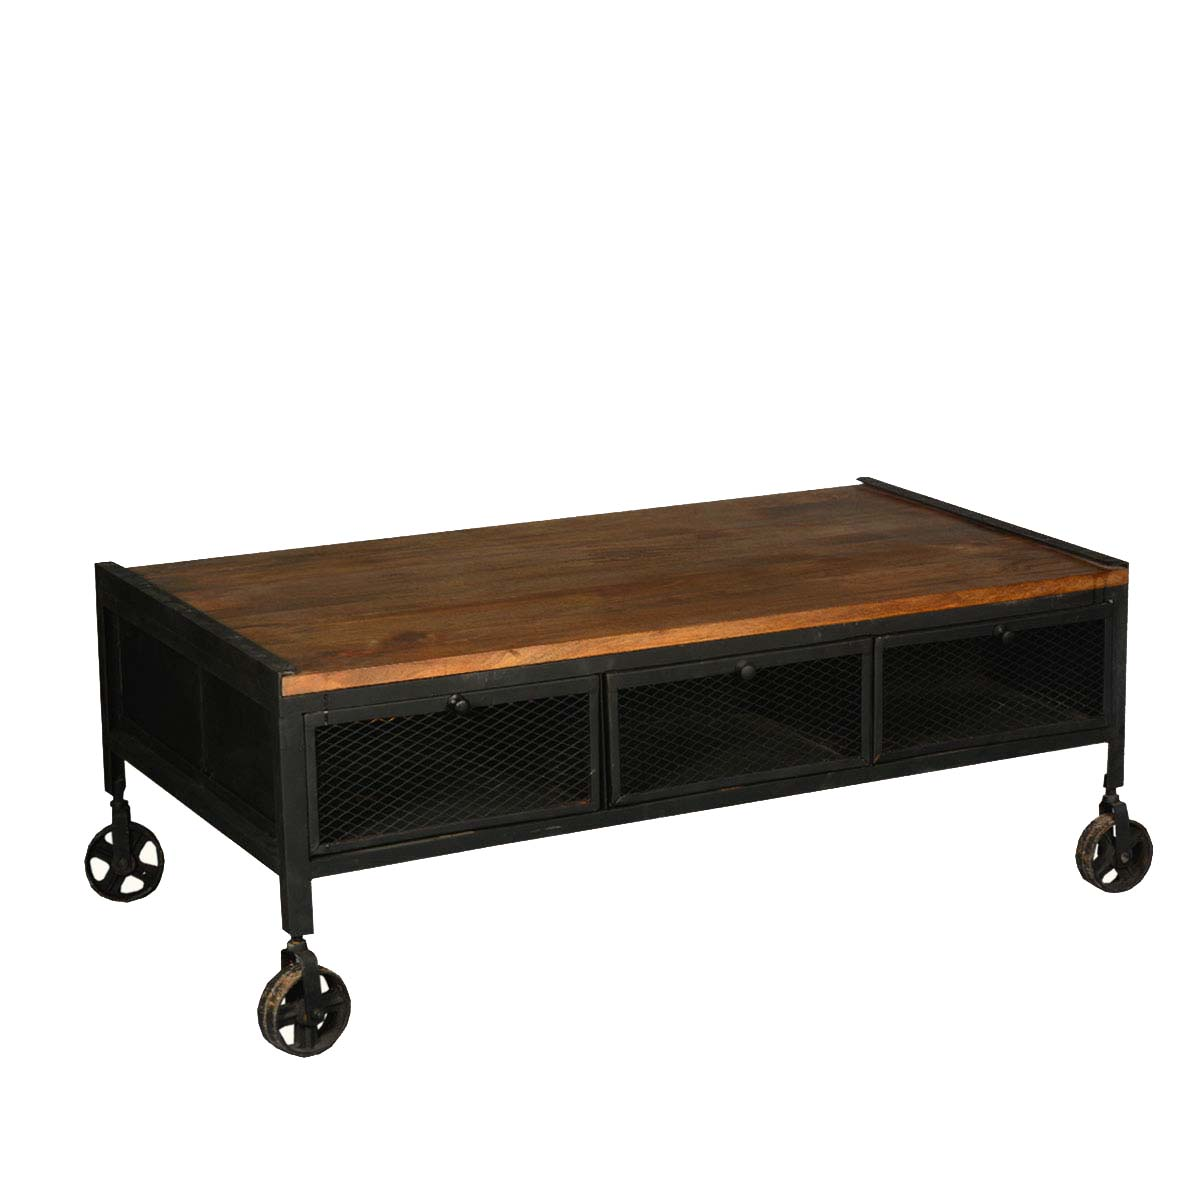 Coffee Table With Drawers: Aiden Industrial Rustic Coffee Table With Drawers